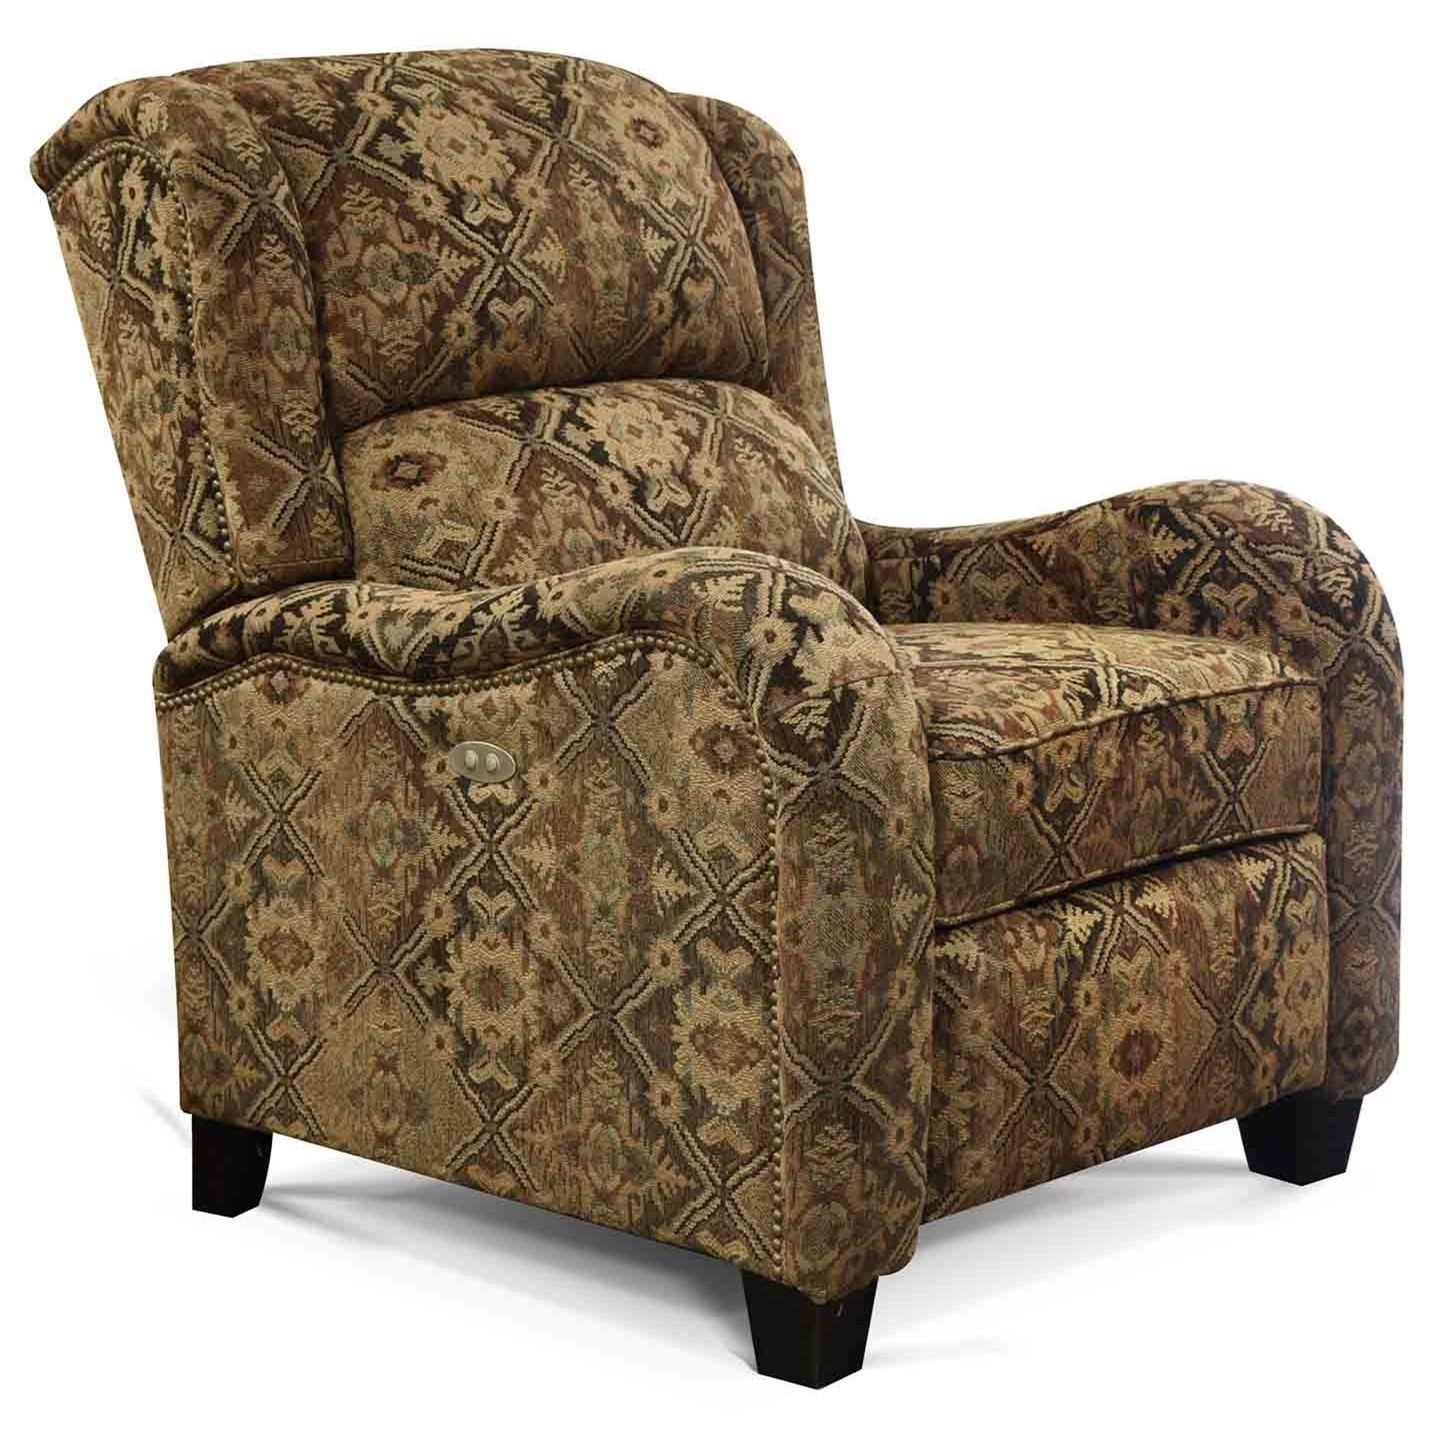 V190 Power Recliner by Alexvale at Northeast Factory Direct